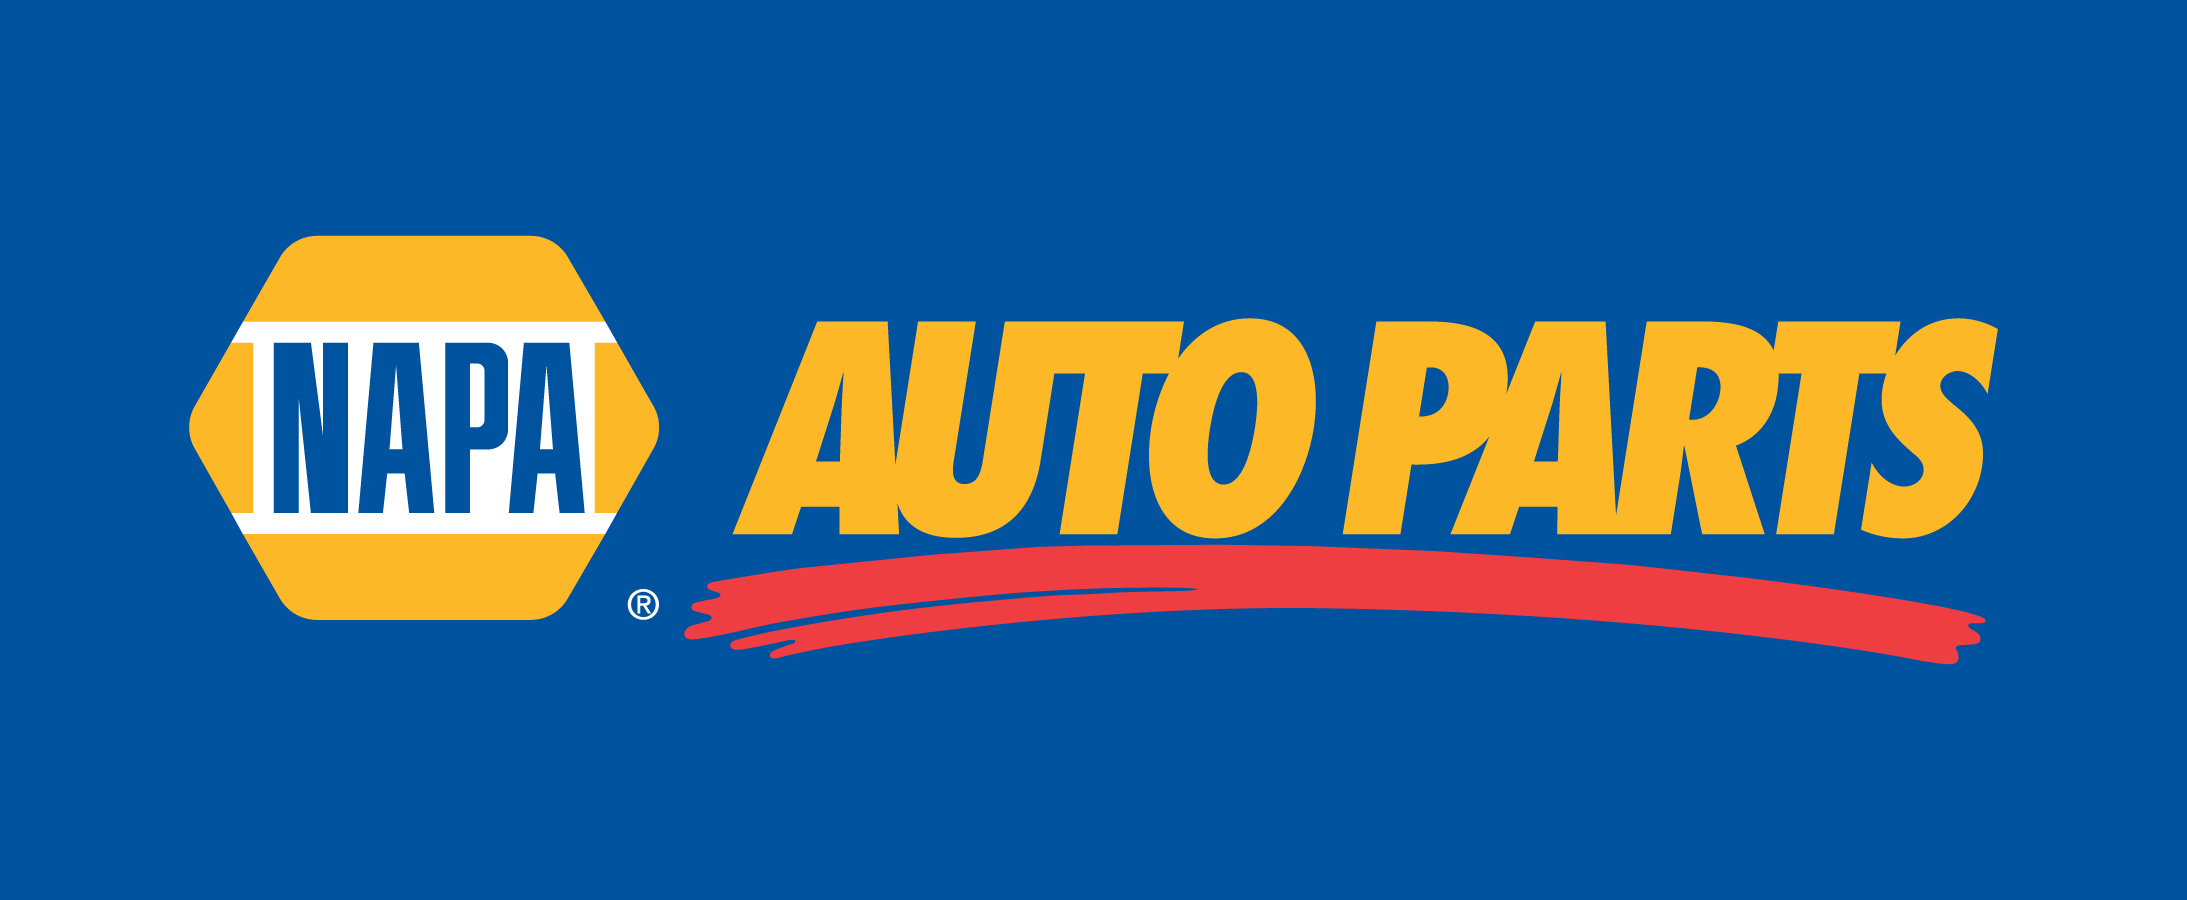 Car Parts and Accessories - NAPA Auto Parts